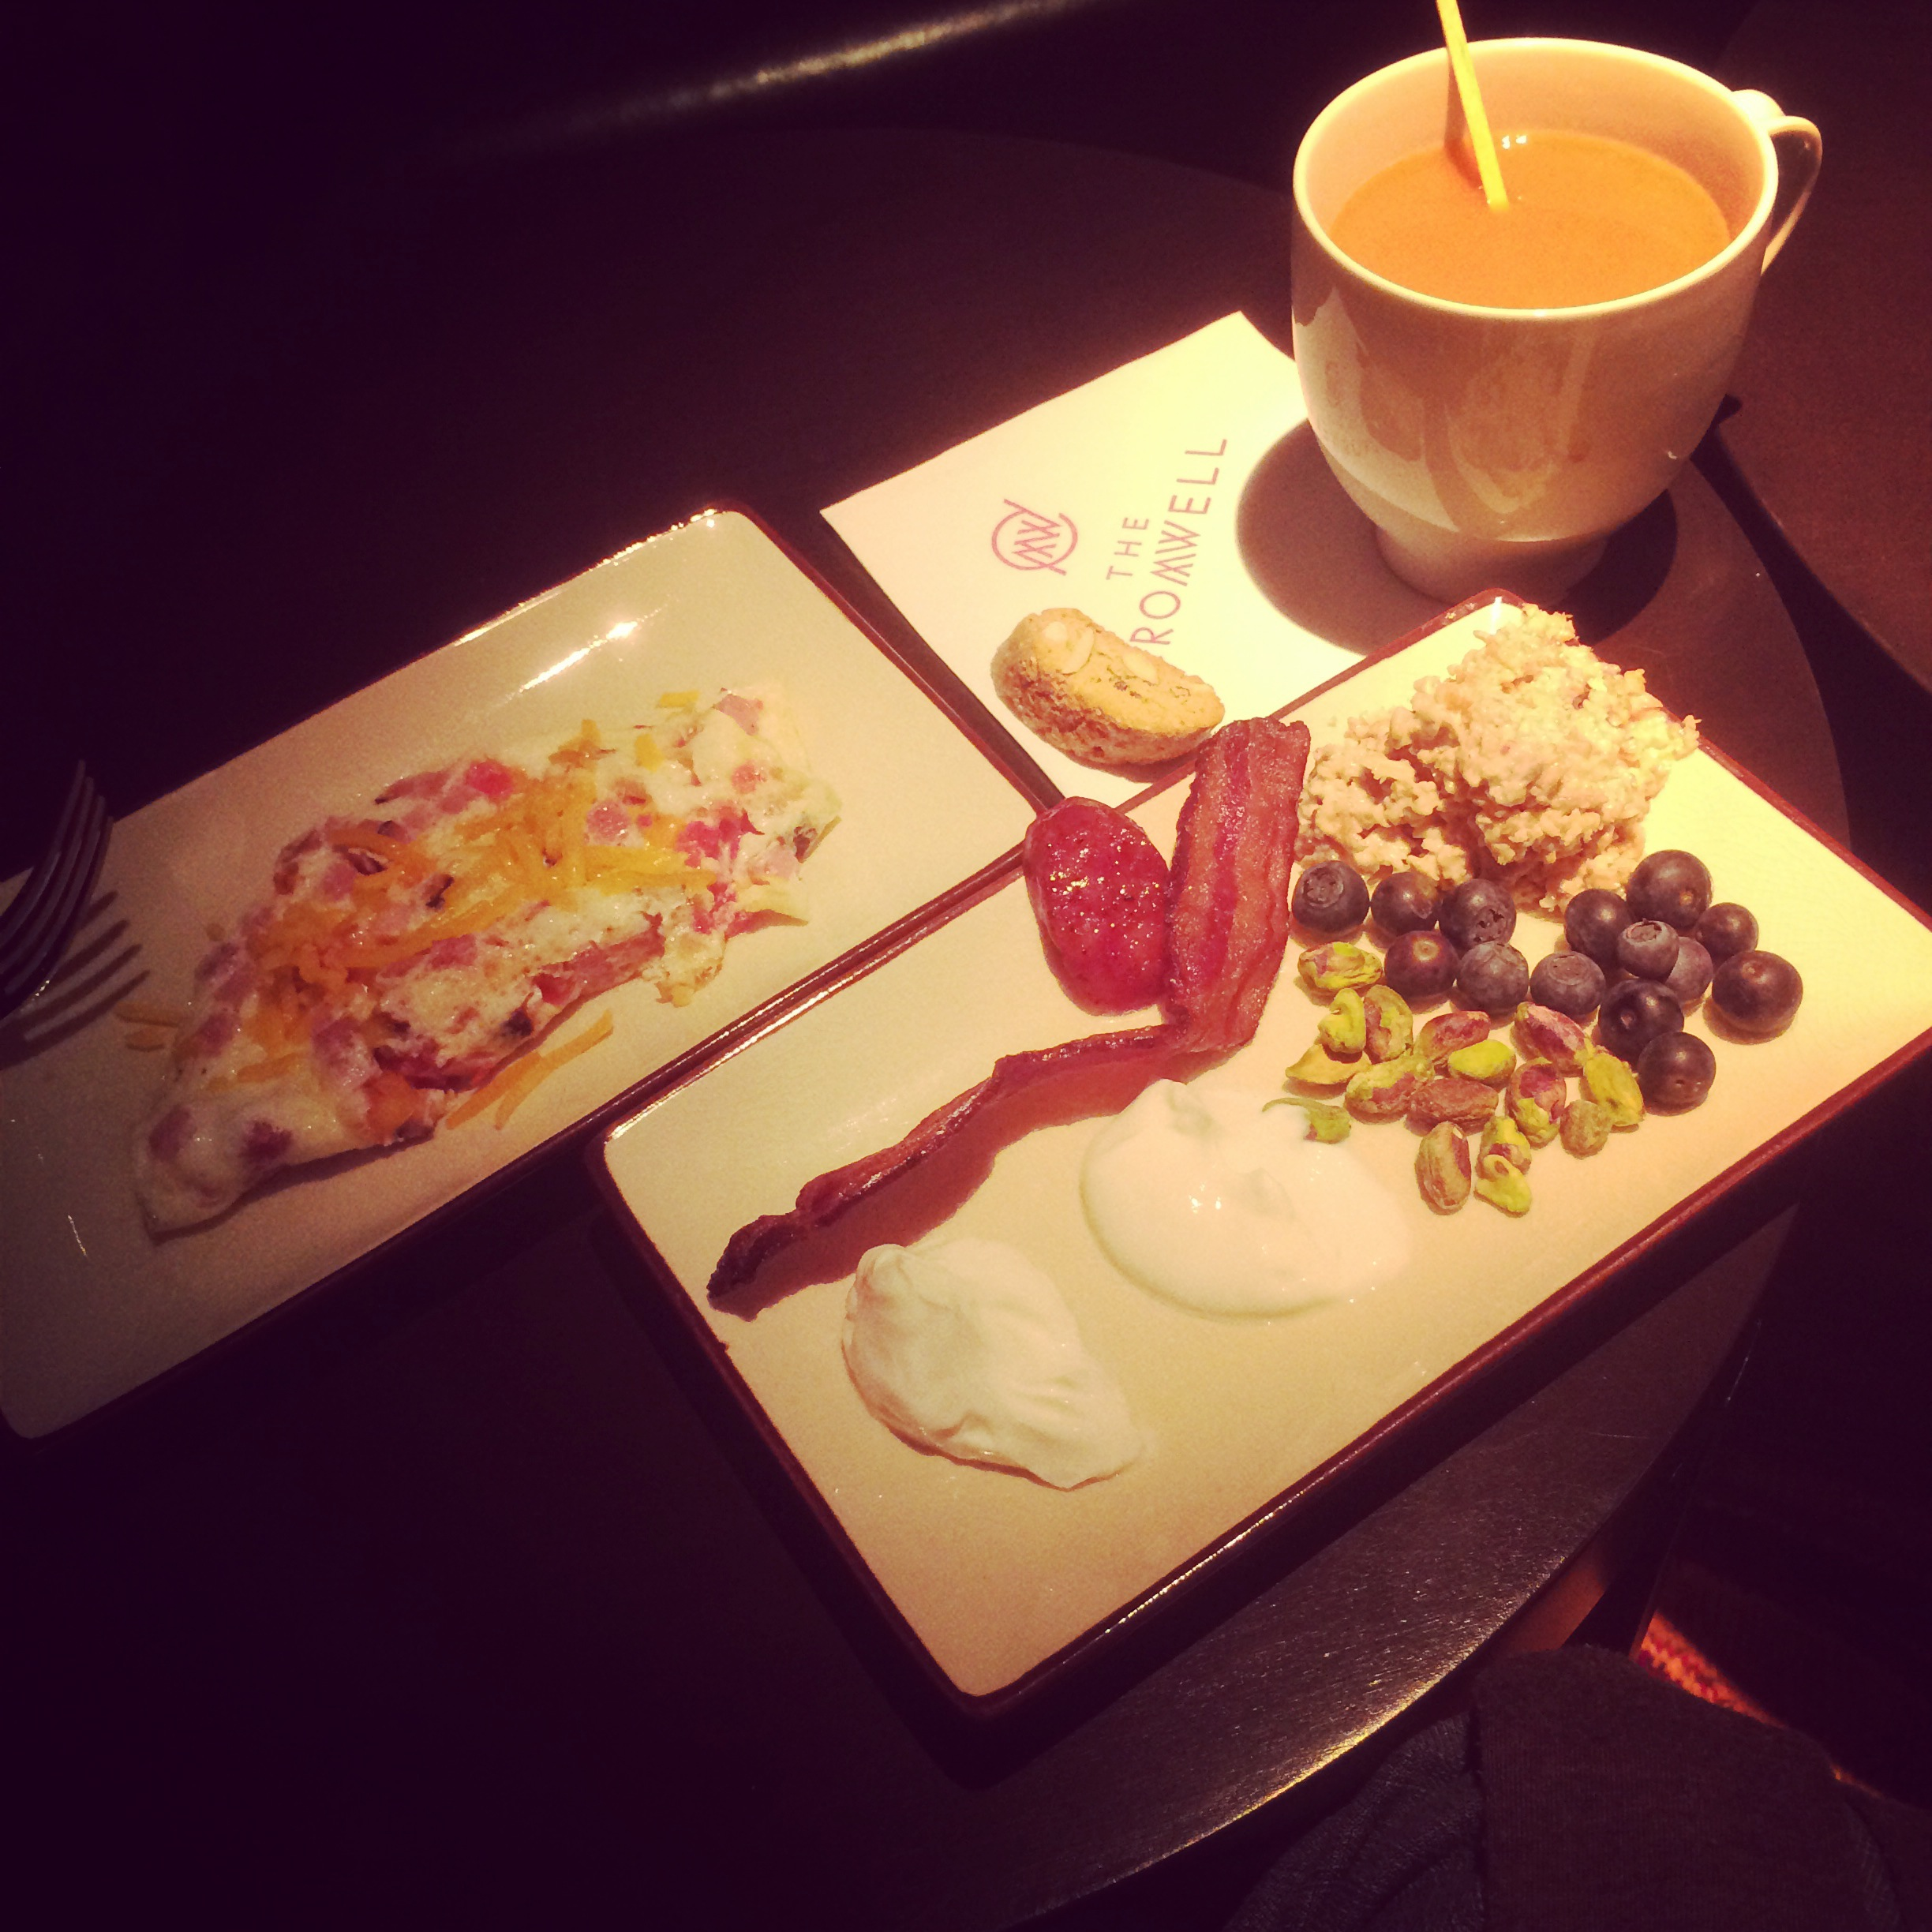 Breakfast done well is one of my favorite meals - The Cromwell's offerings were perfect. I should know....I tried it all!